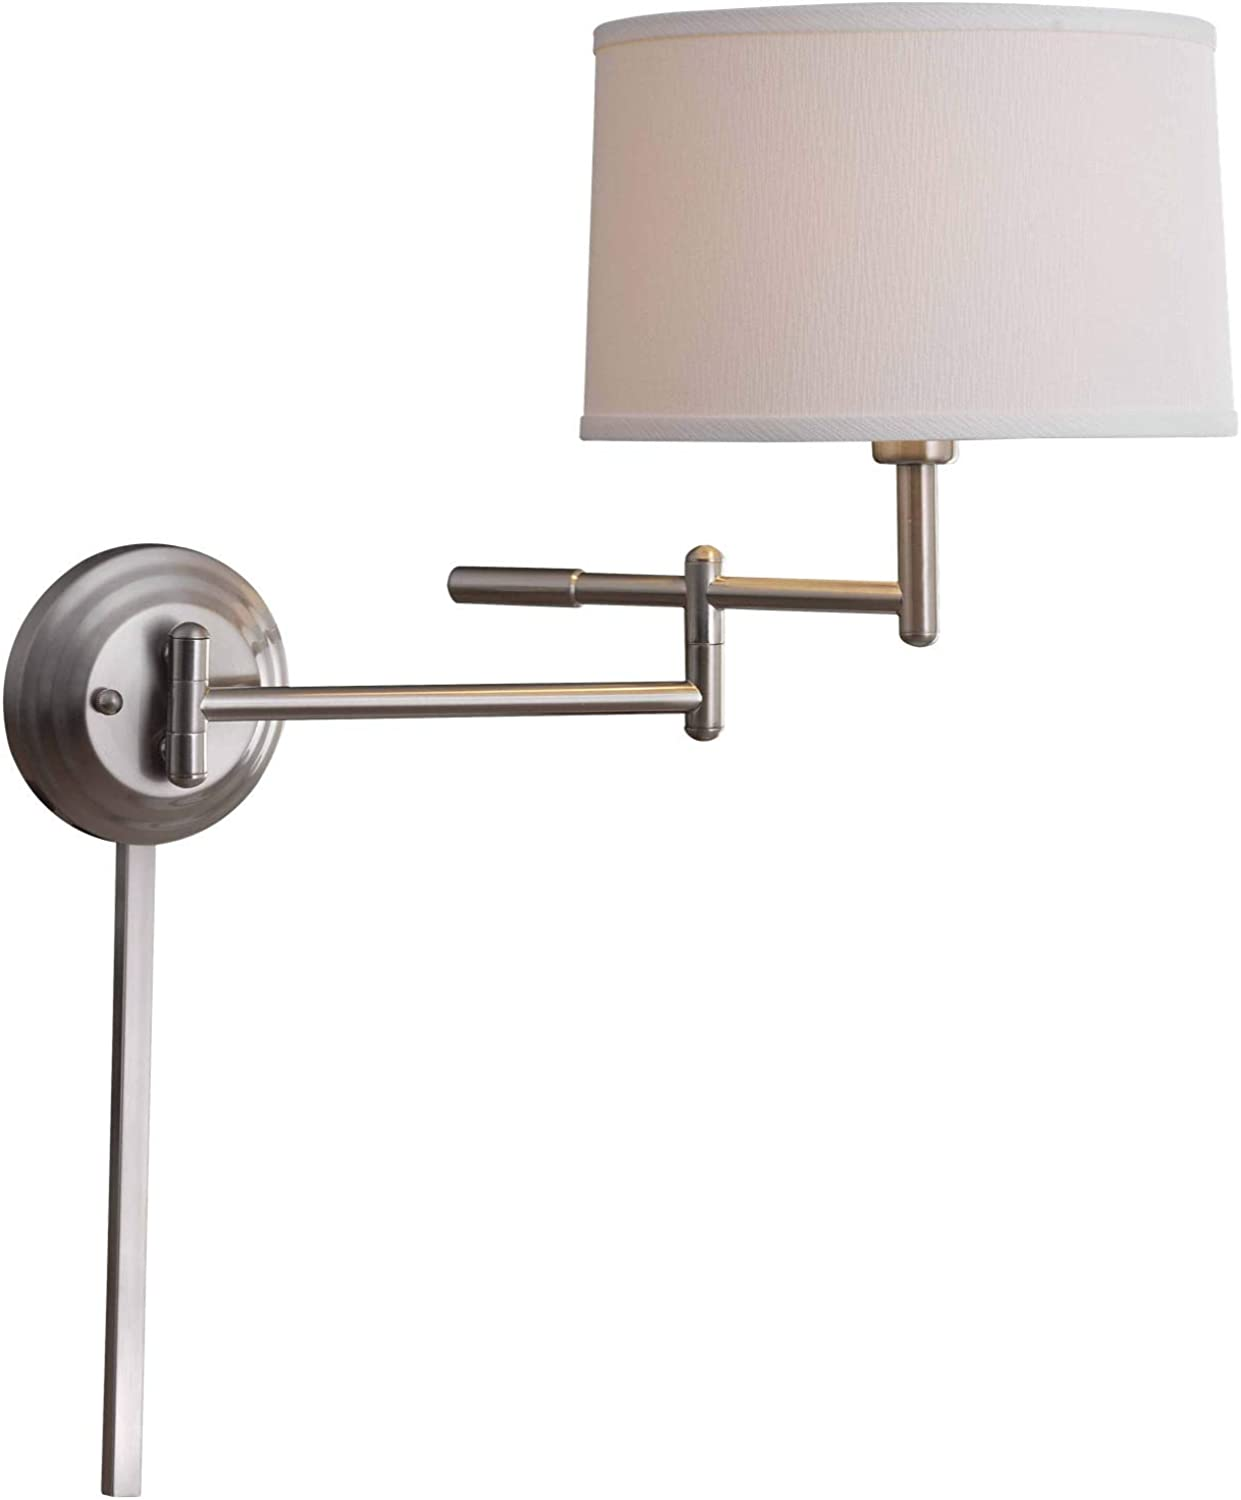 Kenroy Home 20942BS Theta Wall Swing Arm Lamp, 15  H x 18.5  W x 22  Ext, Brushed Steel Finish